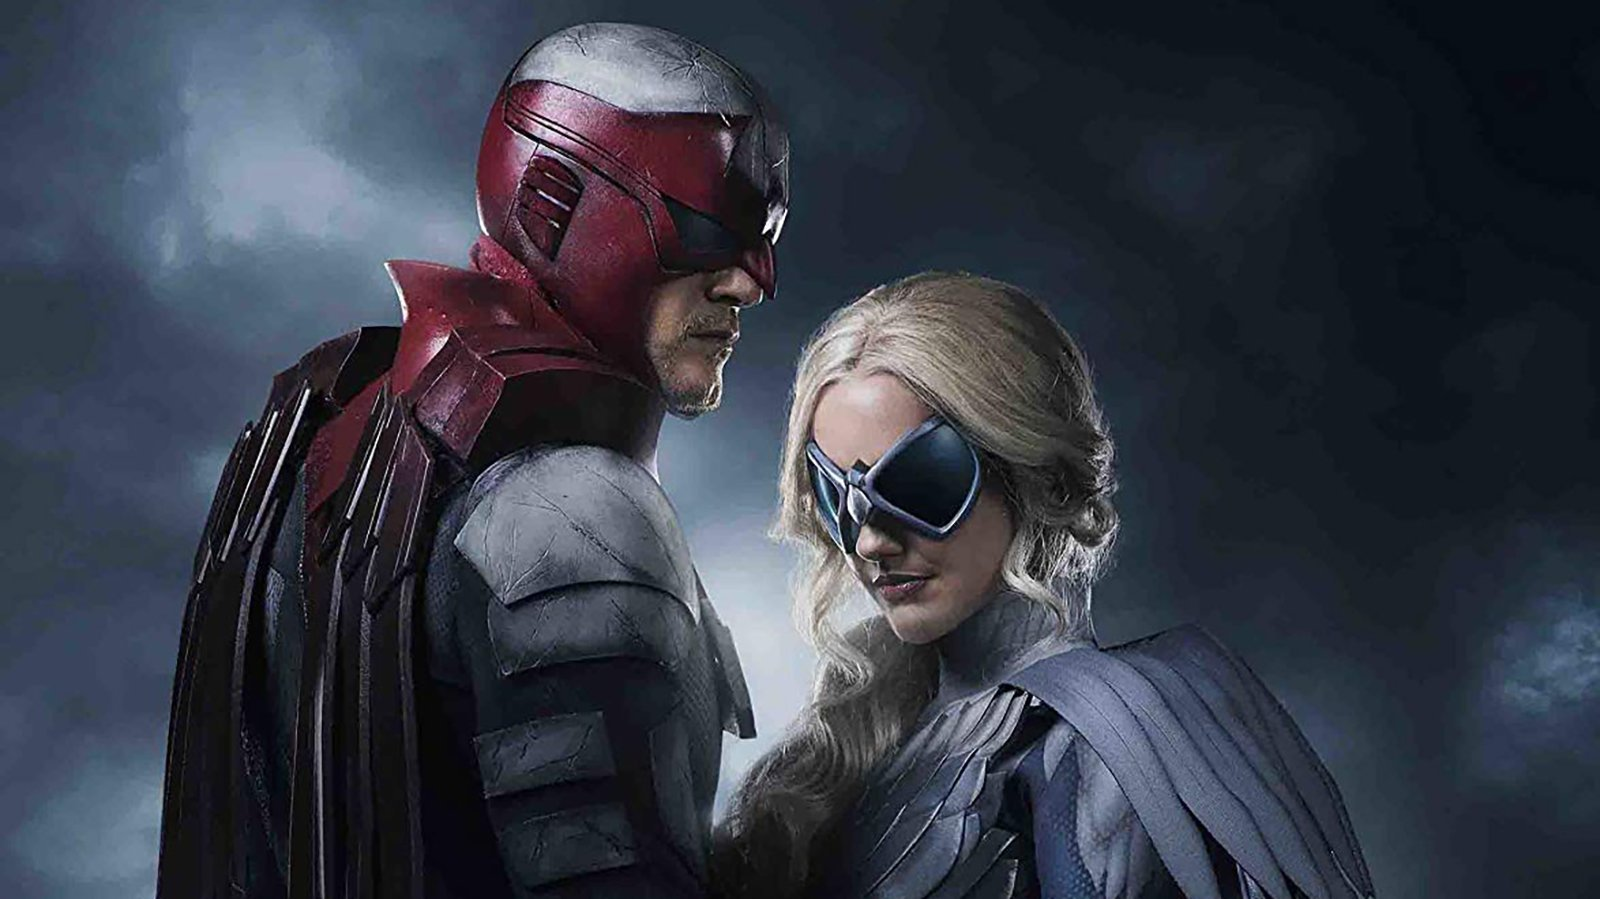 'Titans' production shut down after crew member's death